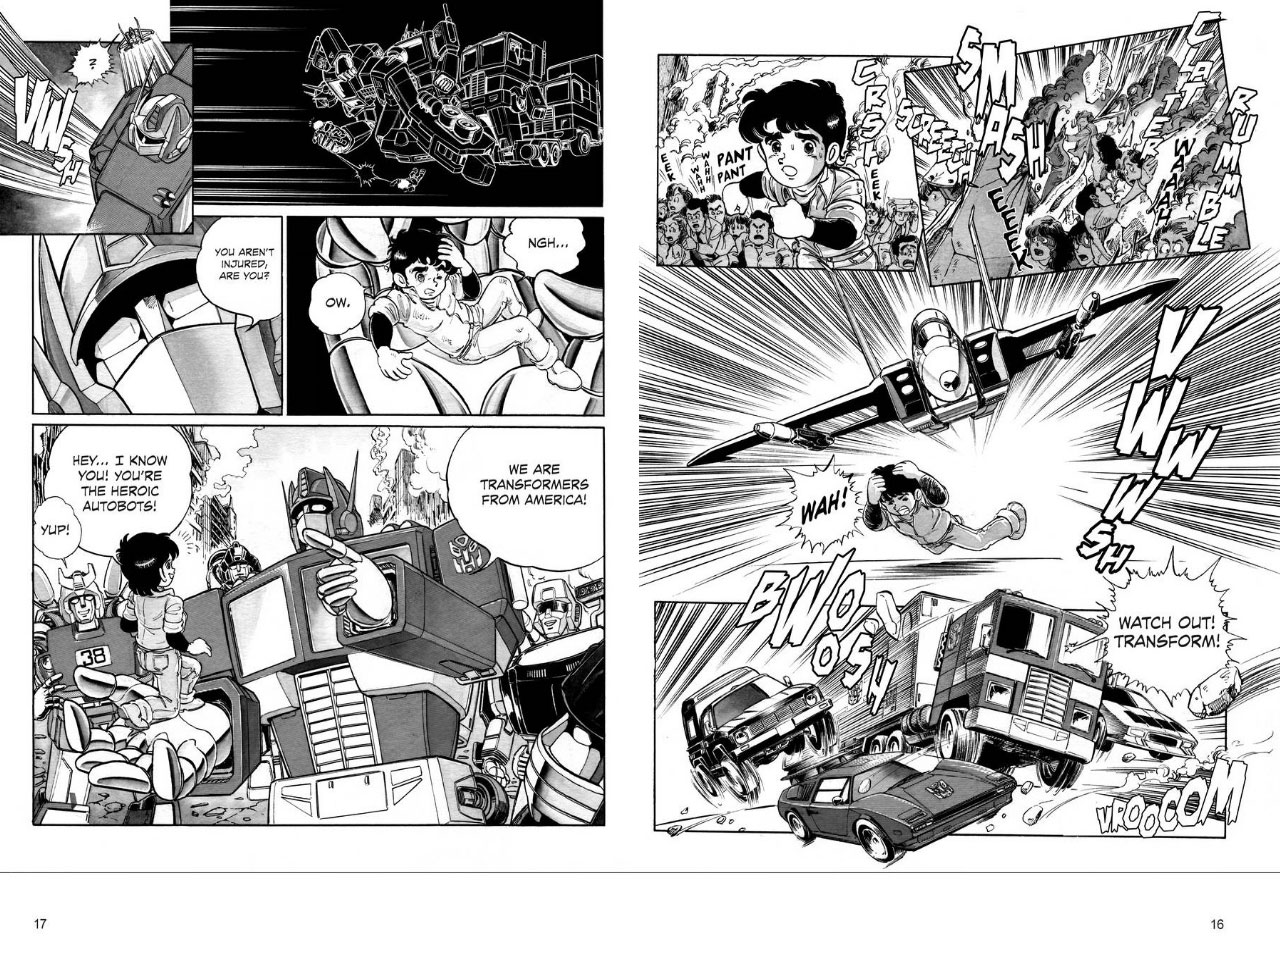 Transformers News: Free preview and additional images of Transformers: The Manga Volume 1 from Viz Media